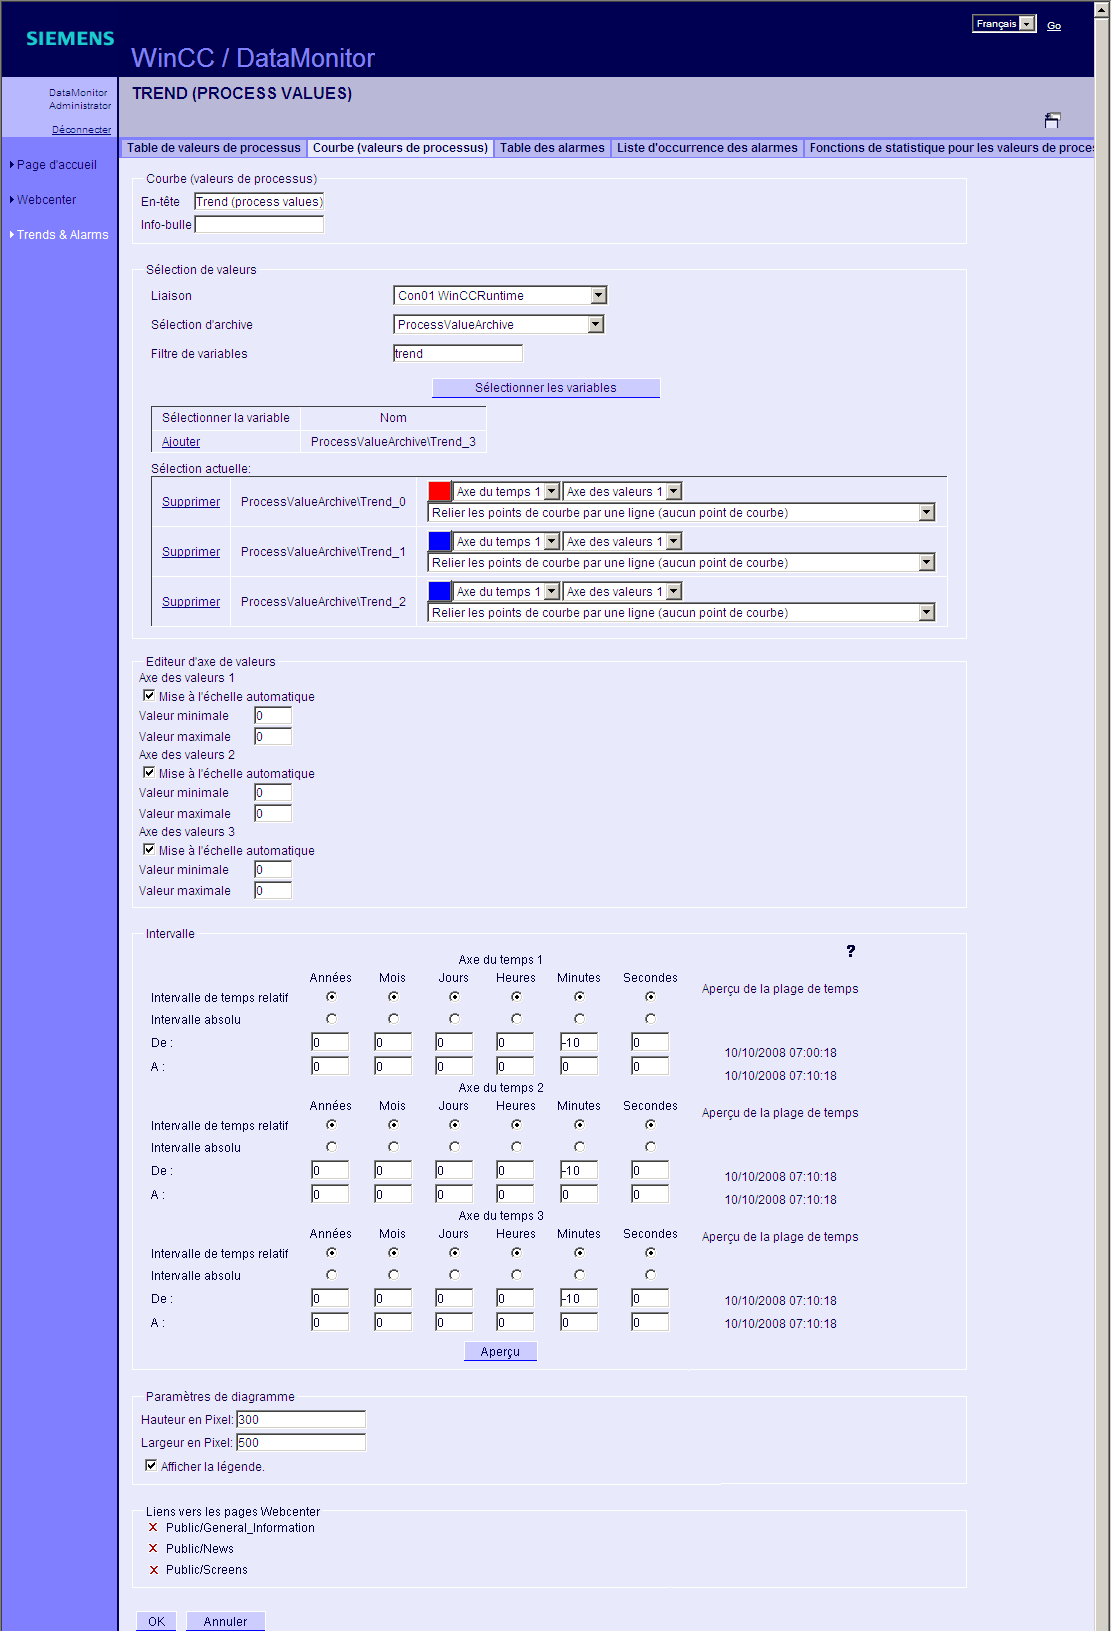 WinCC/DataMonitor Documentation 4.